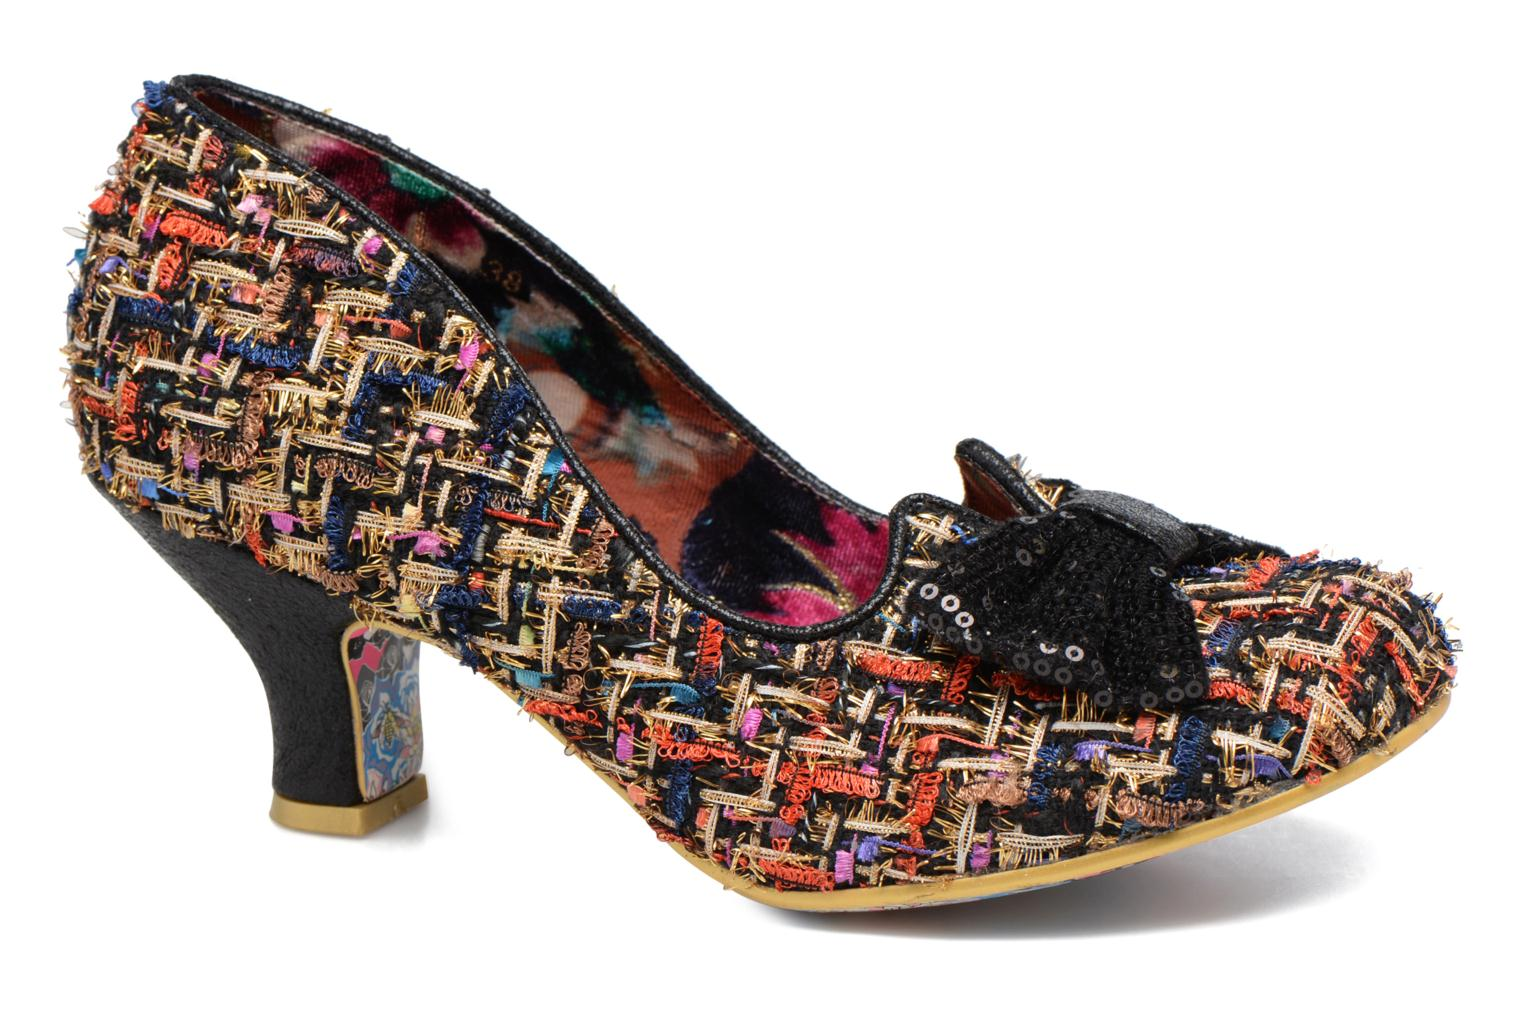 Marques Chaussure femme Irregular Choice femme Dazzle Razzle Black/gold